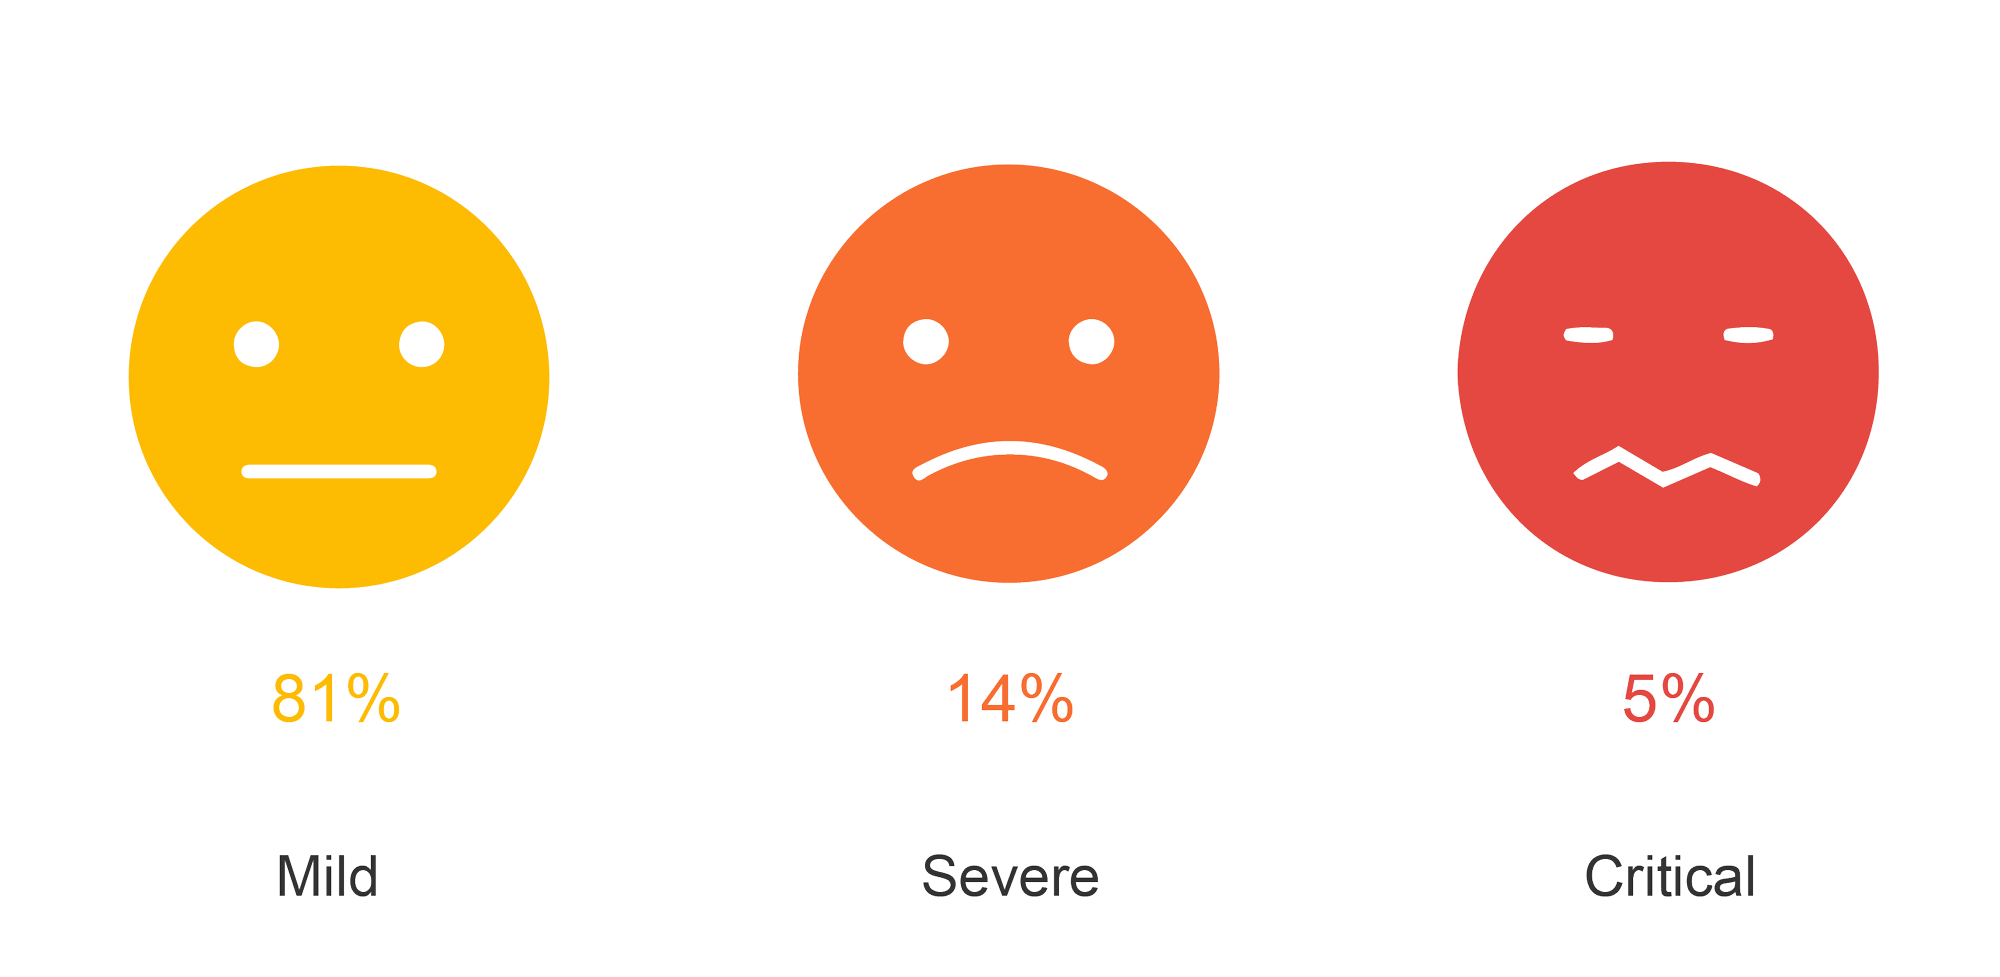 percent of mild (81), severe (14) and critical (5) cases of COVID 19.